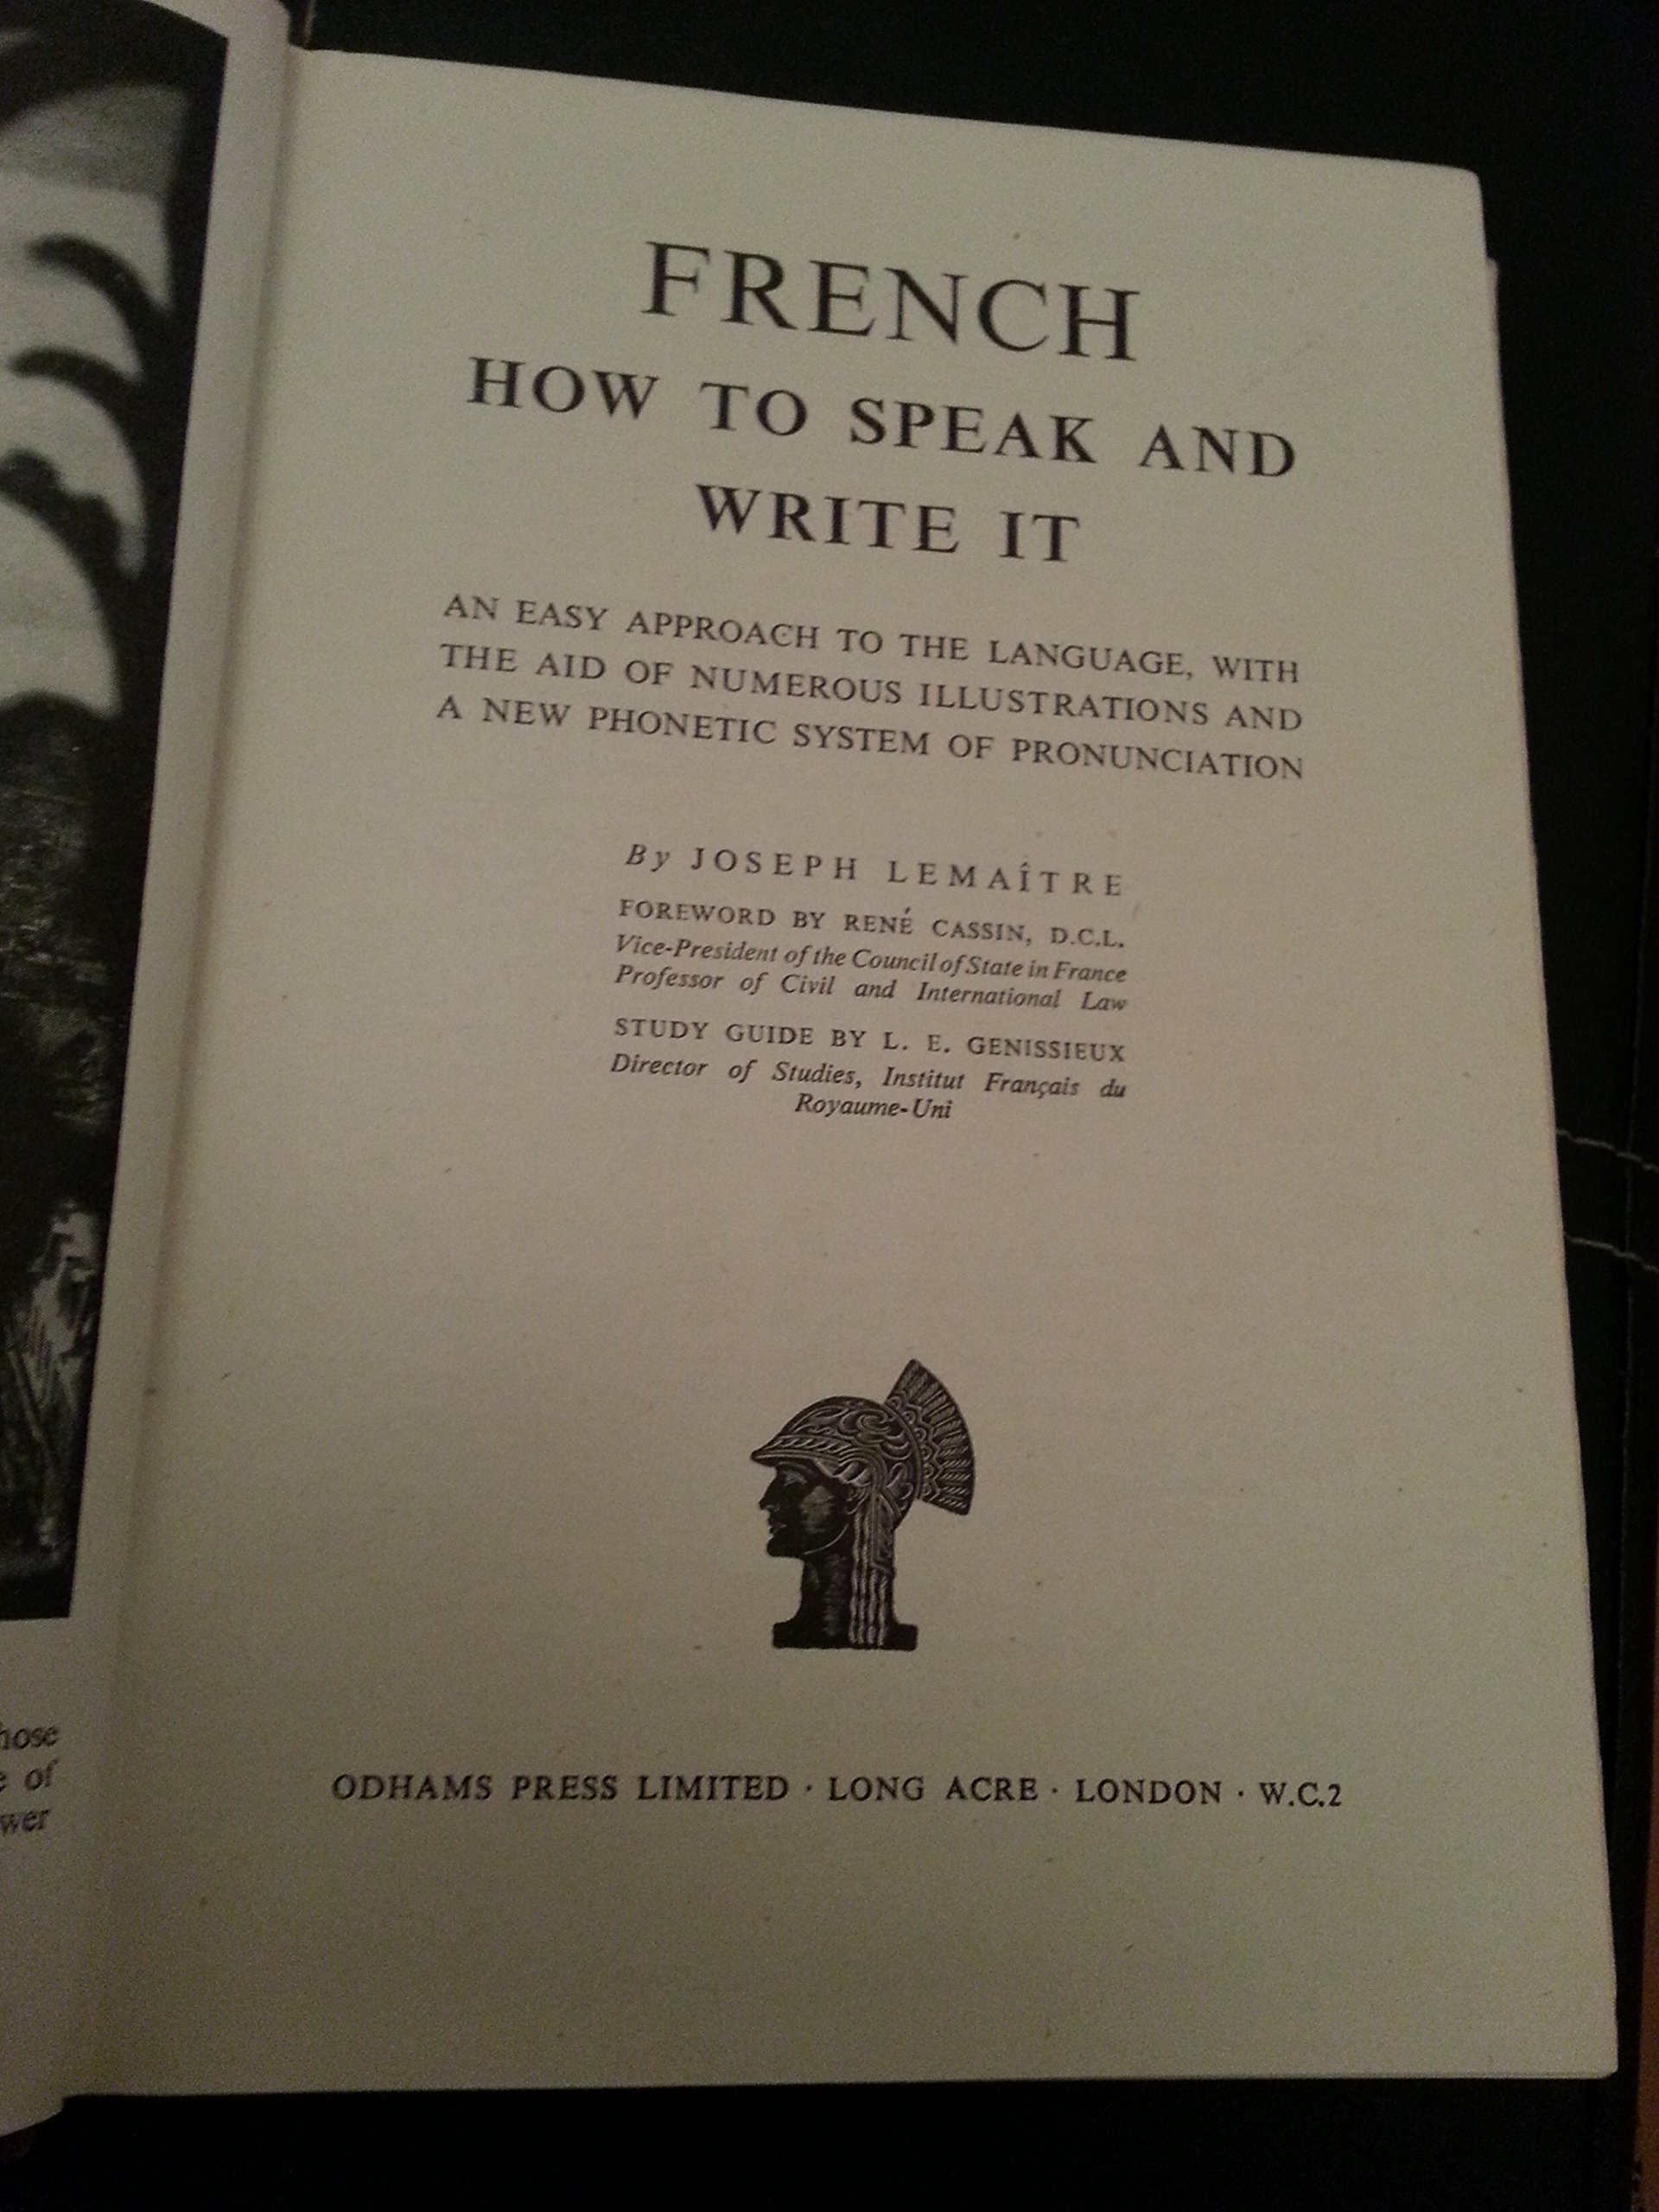 French How to Speak and Write It